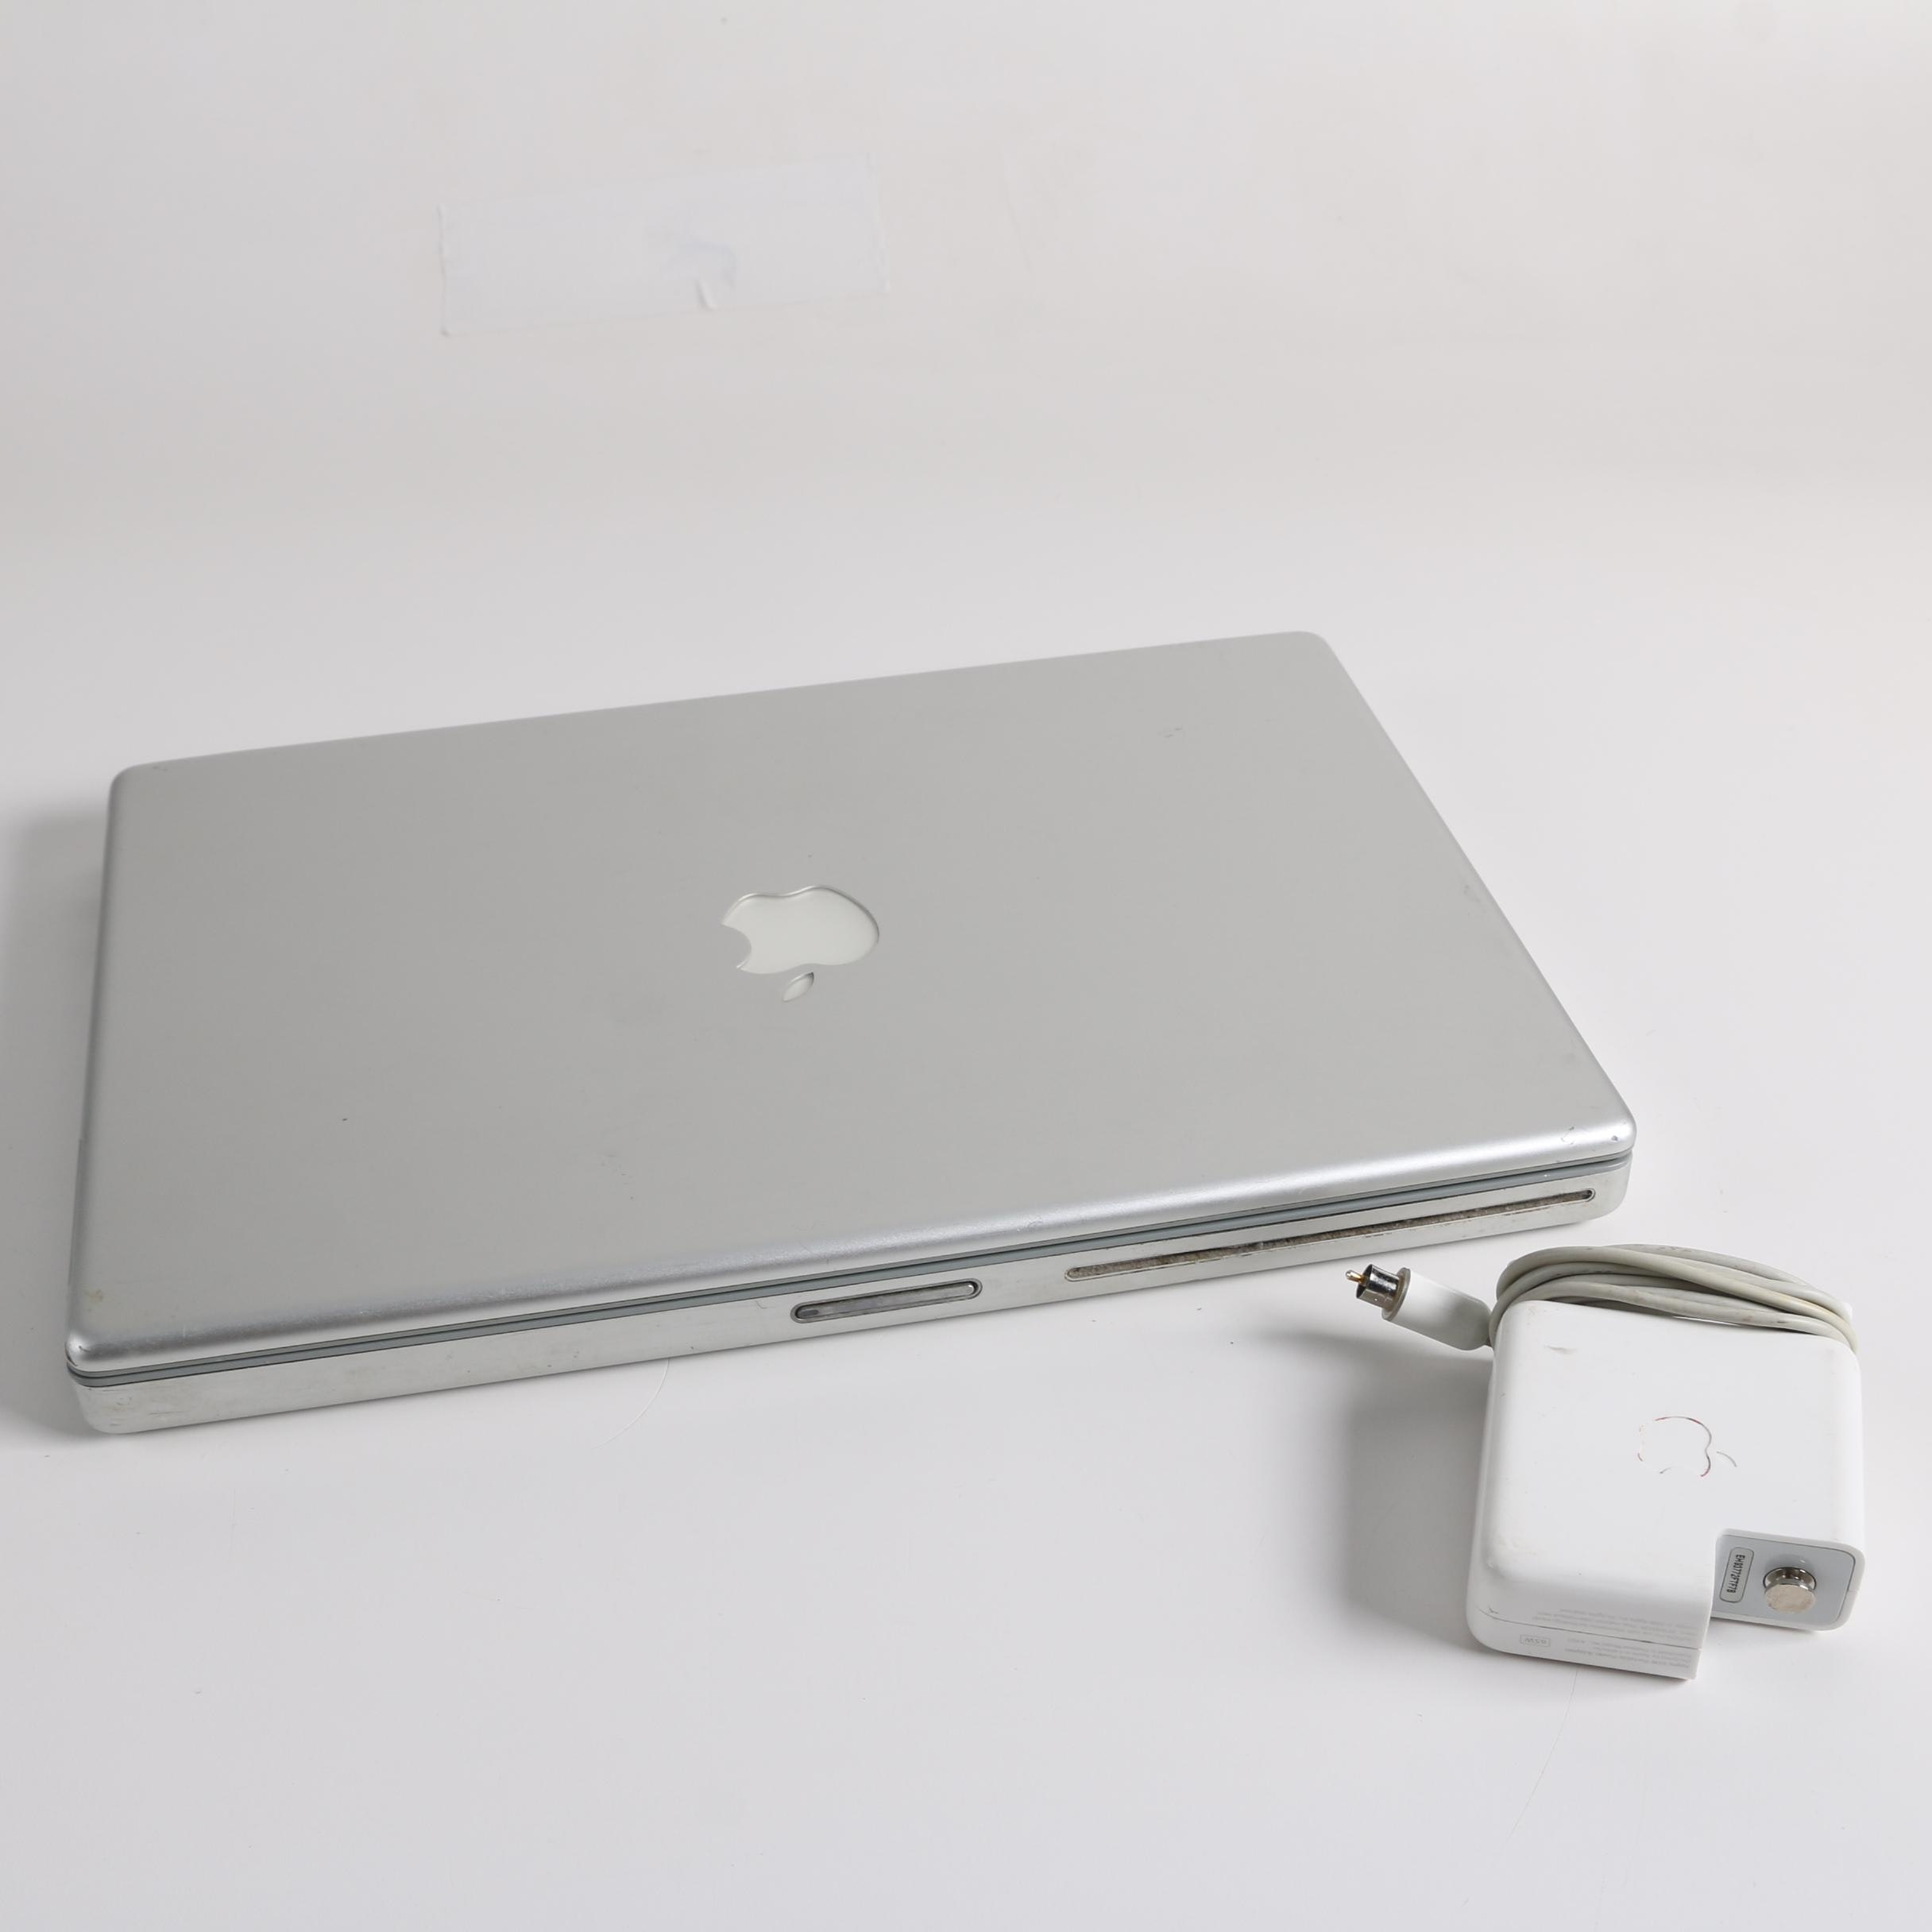 Apple PowerBook G4 Laptop Computer